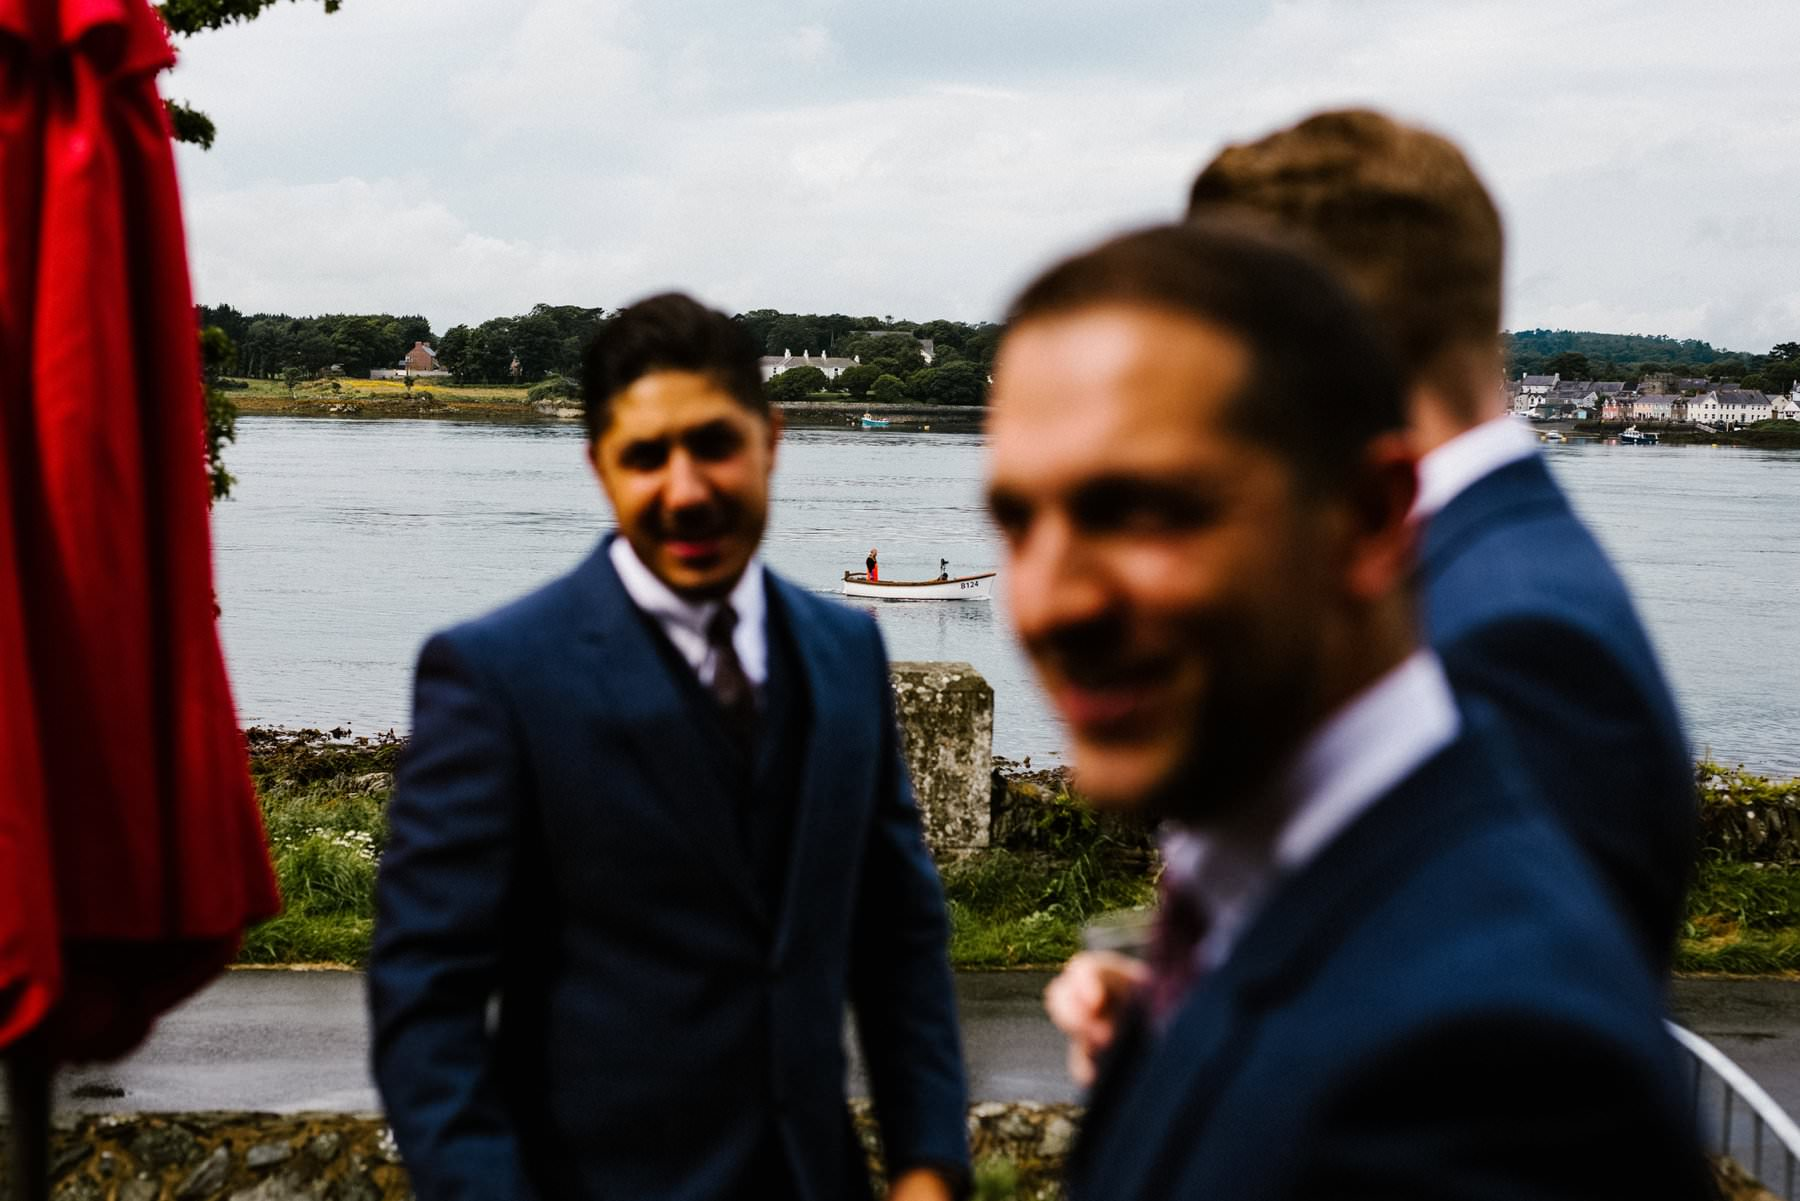 boat sails by groom on wedding day, wedding photographer northern ireland